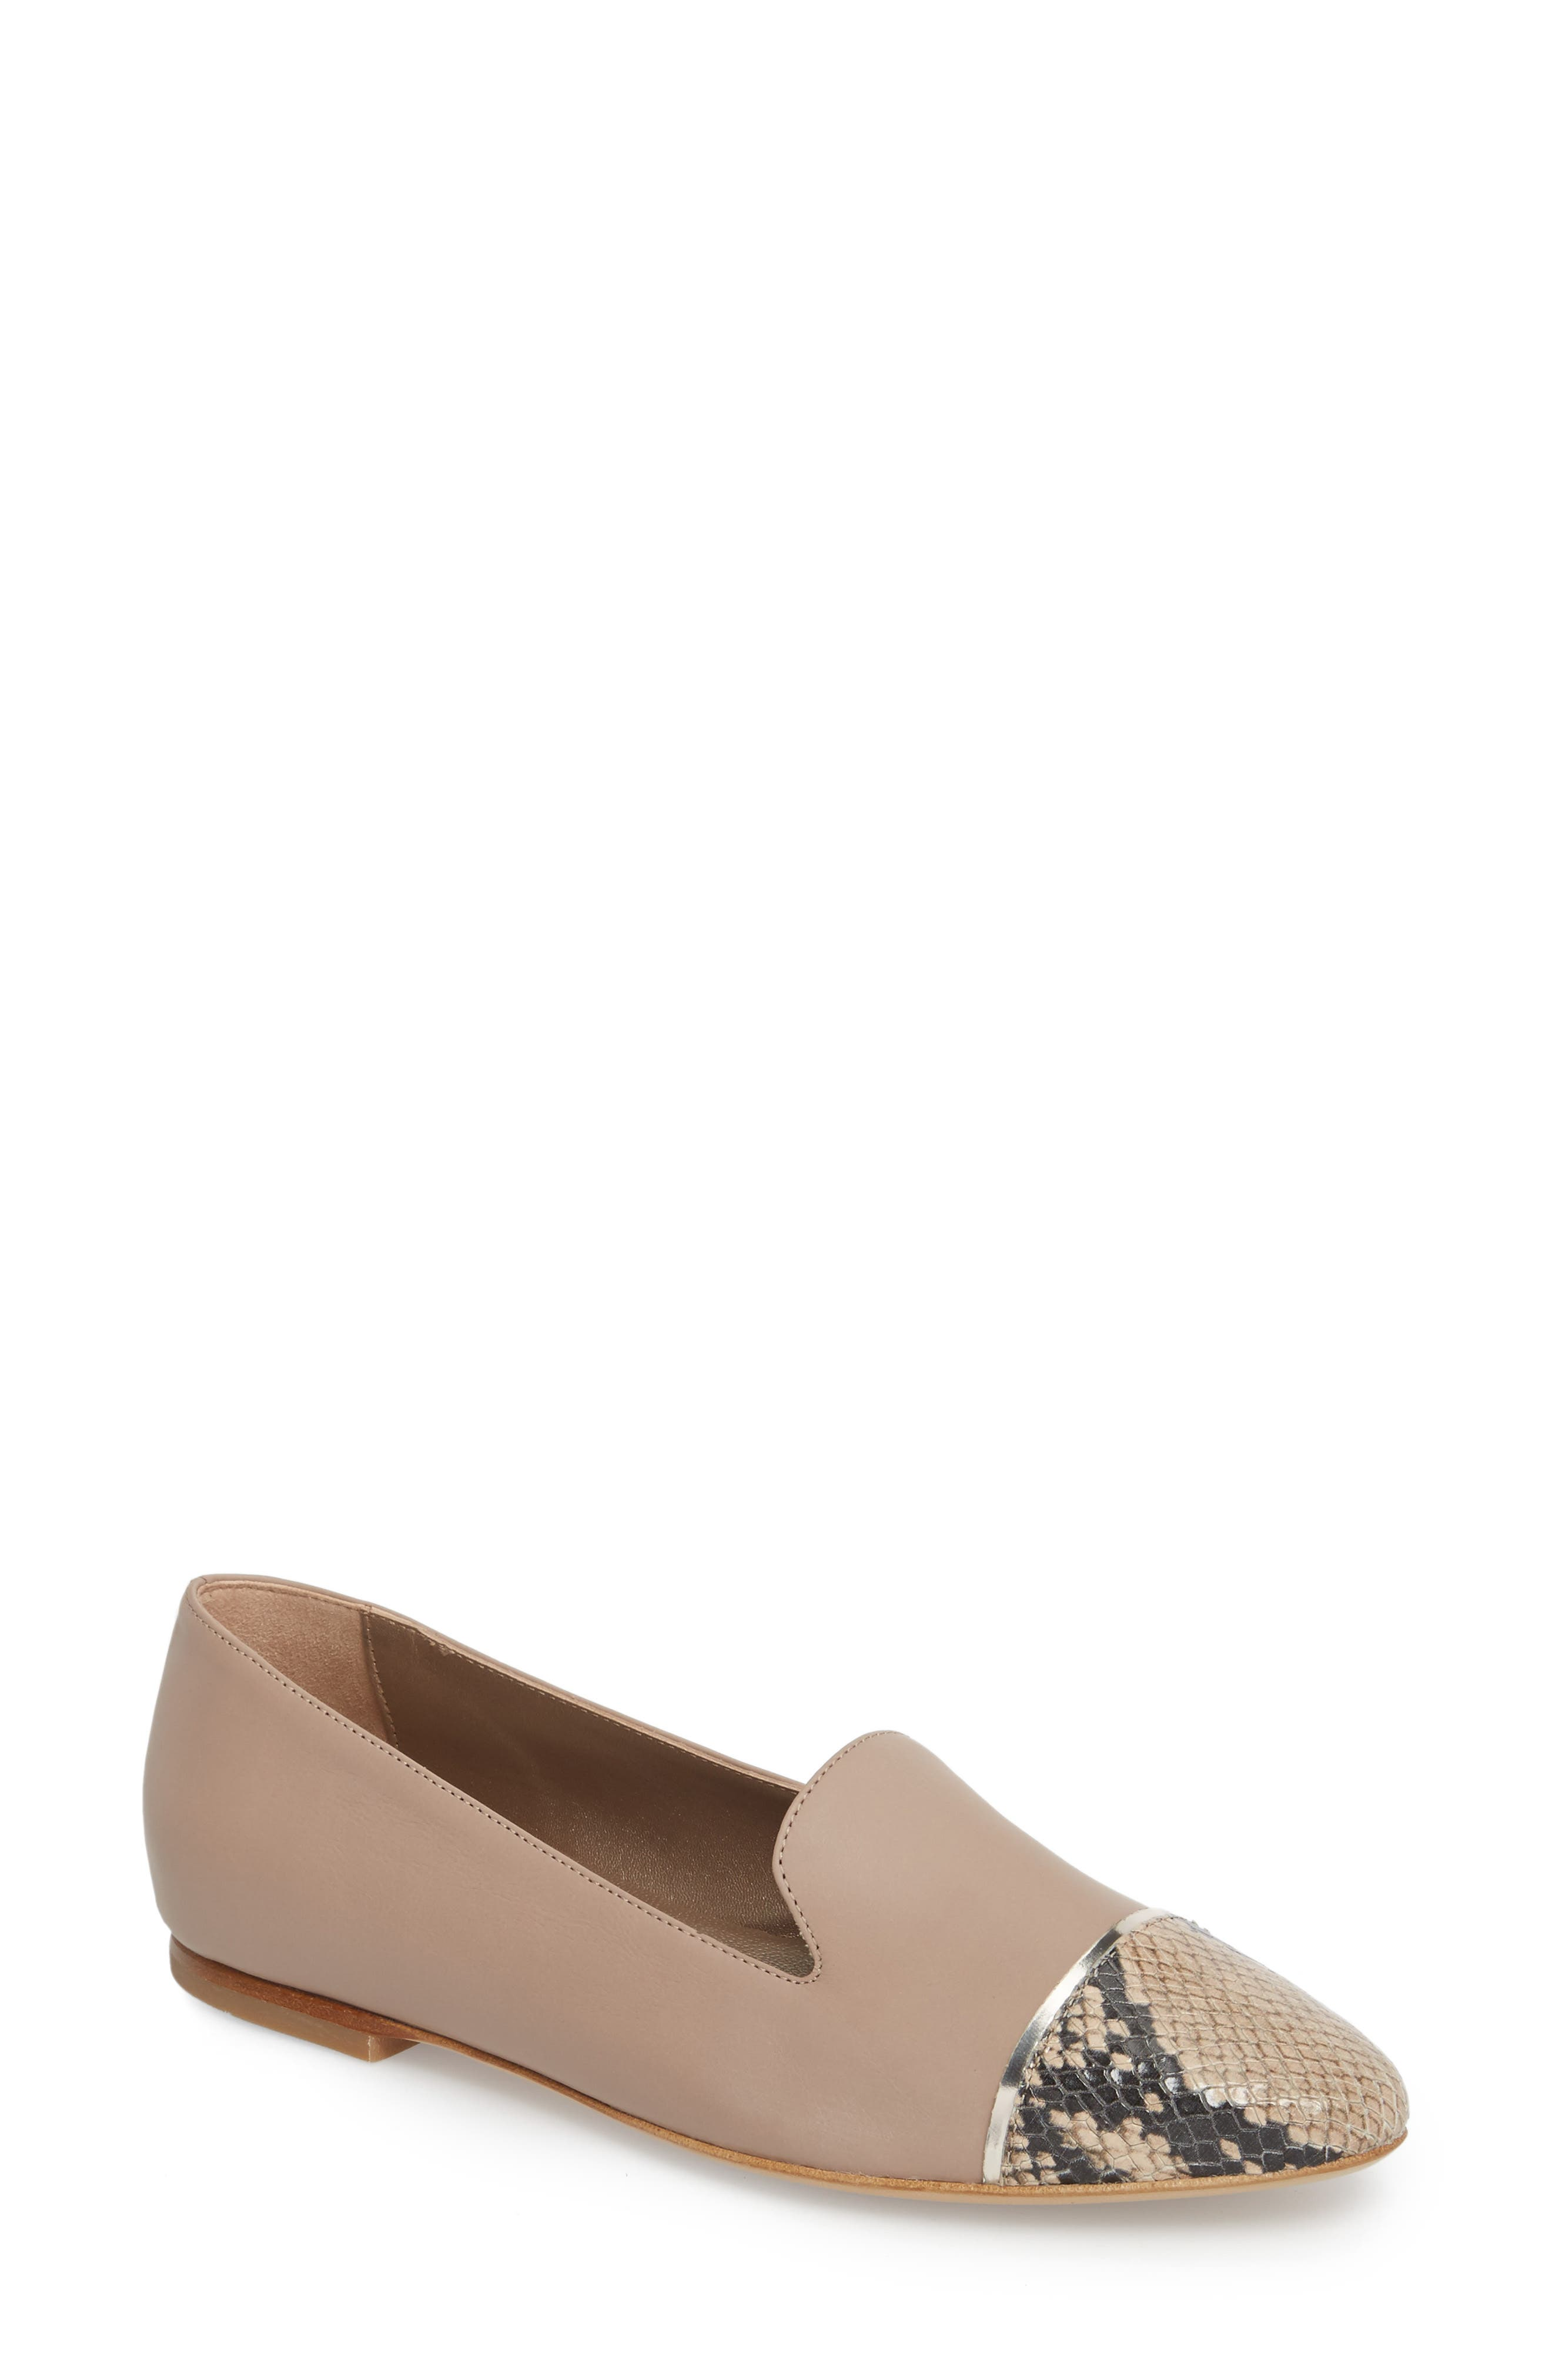 Cap Toe Loafer,                             Main thumbnail 1, color,                             Marble Taupe Leather